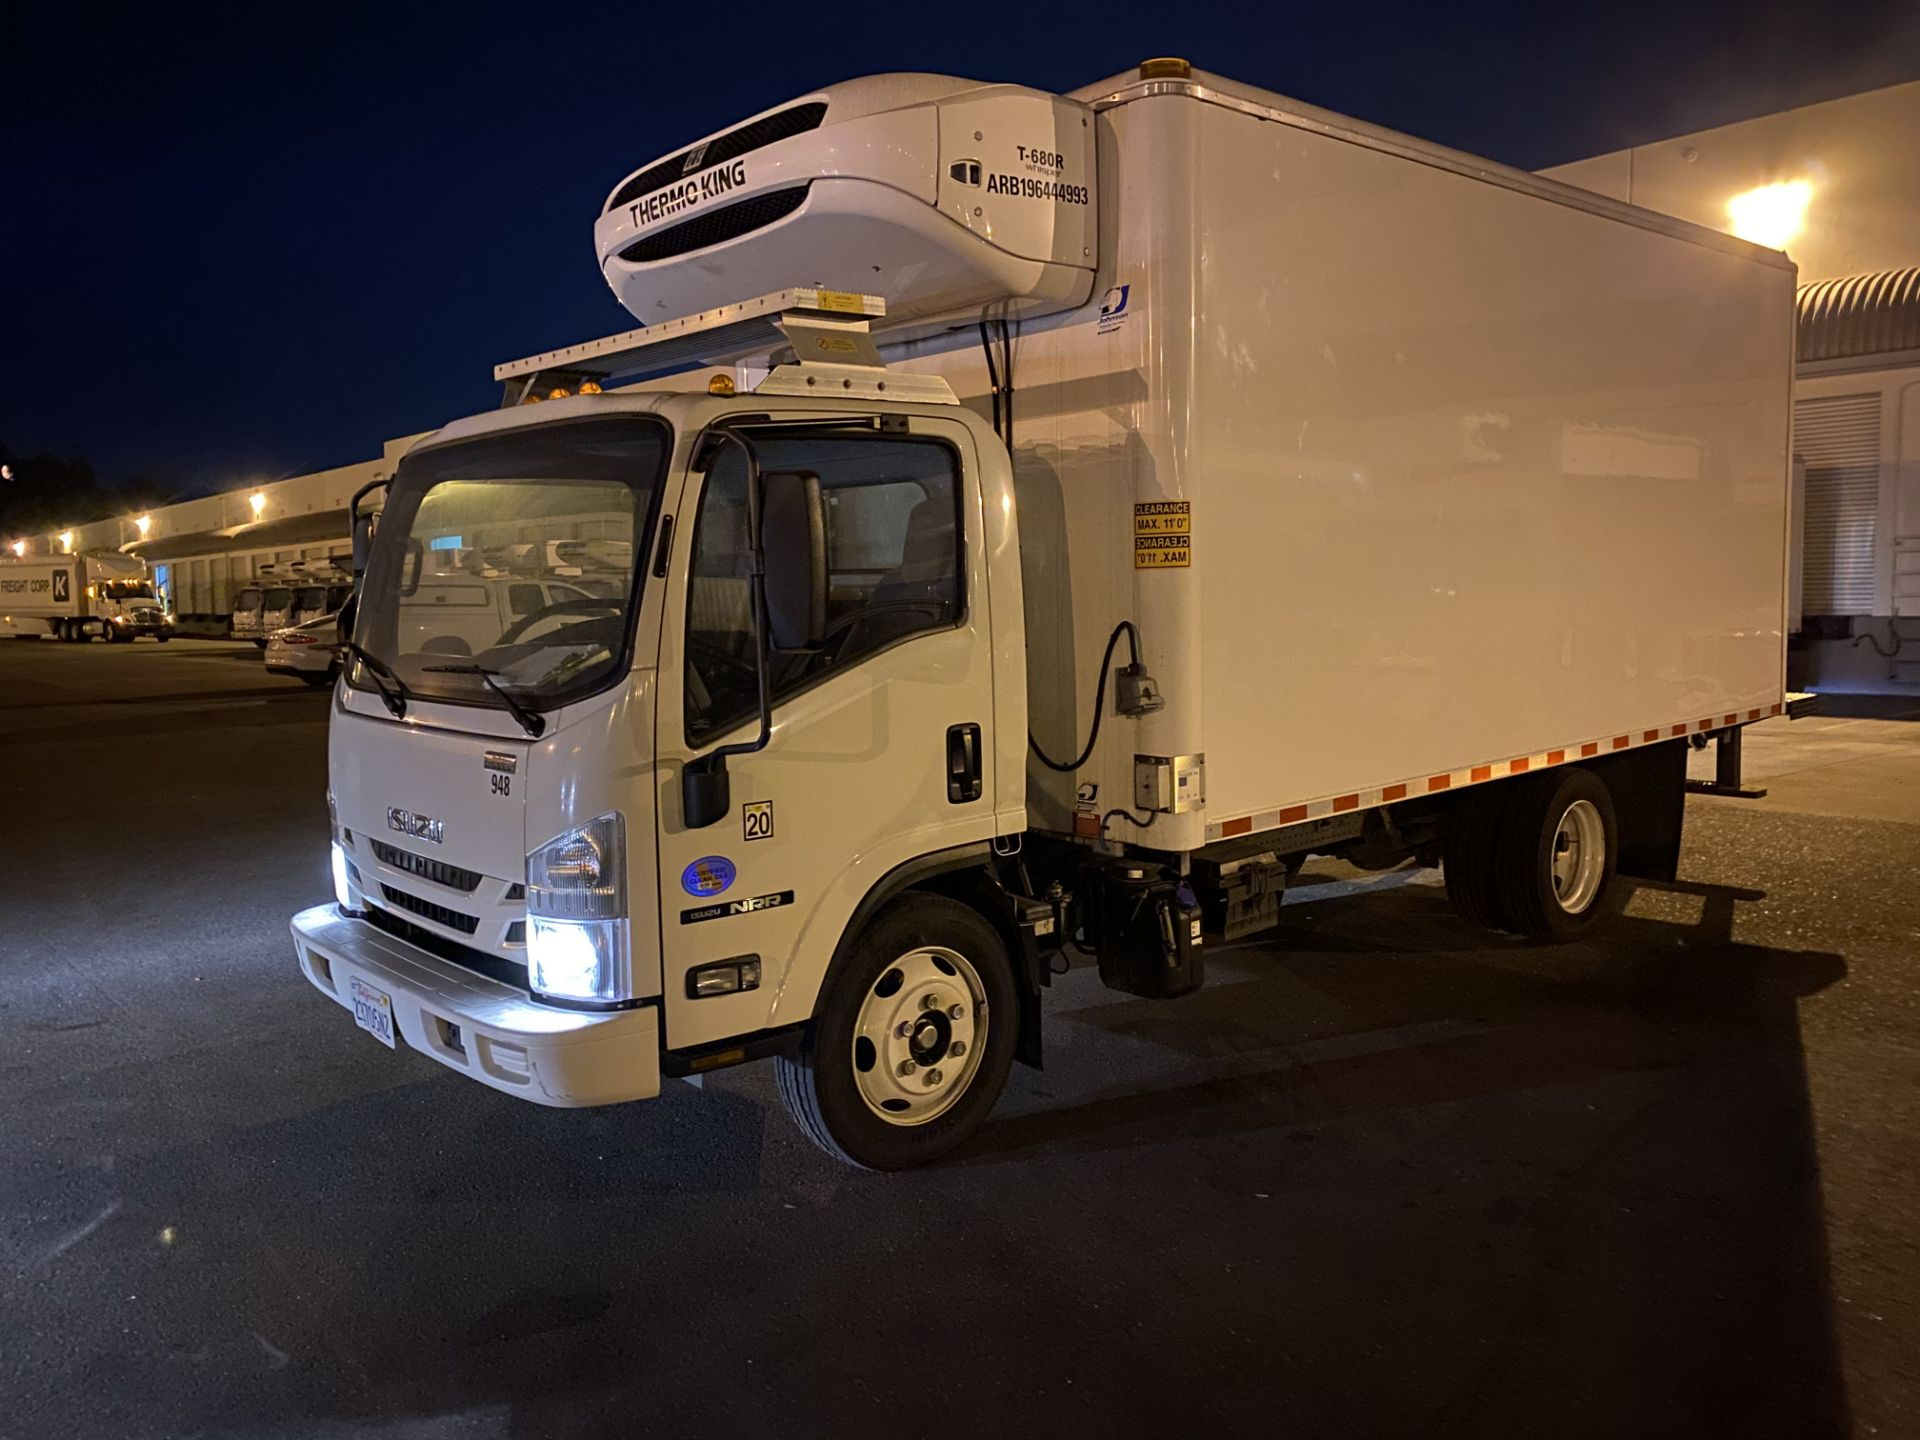 2019 Isuzu refrigerated truck